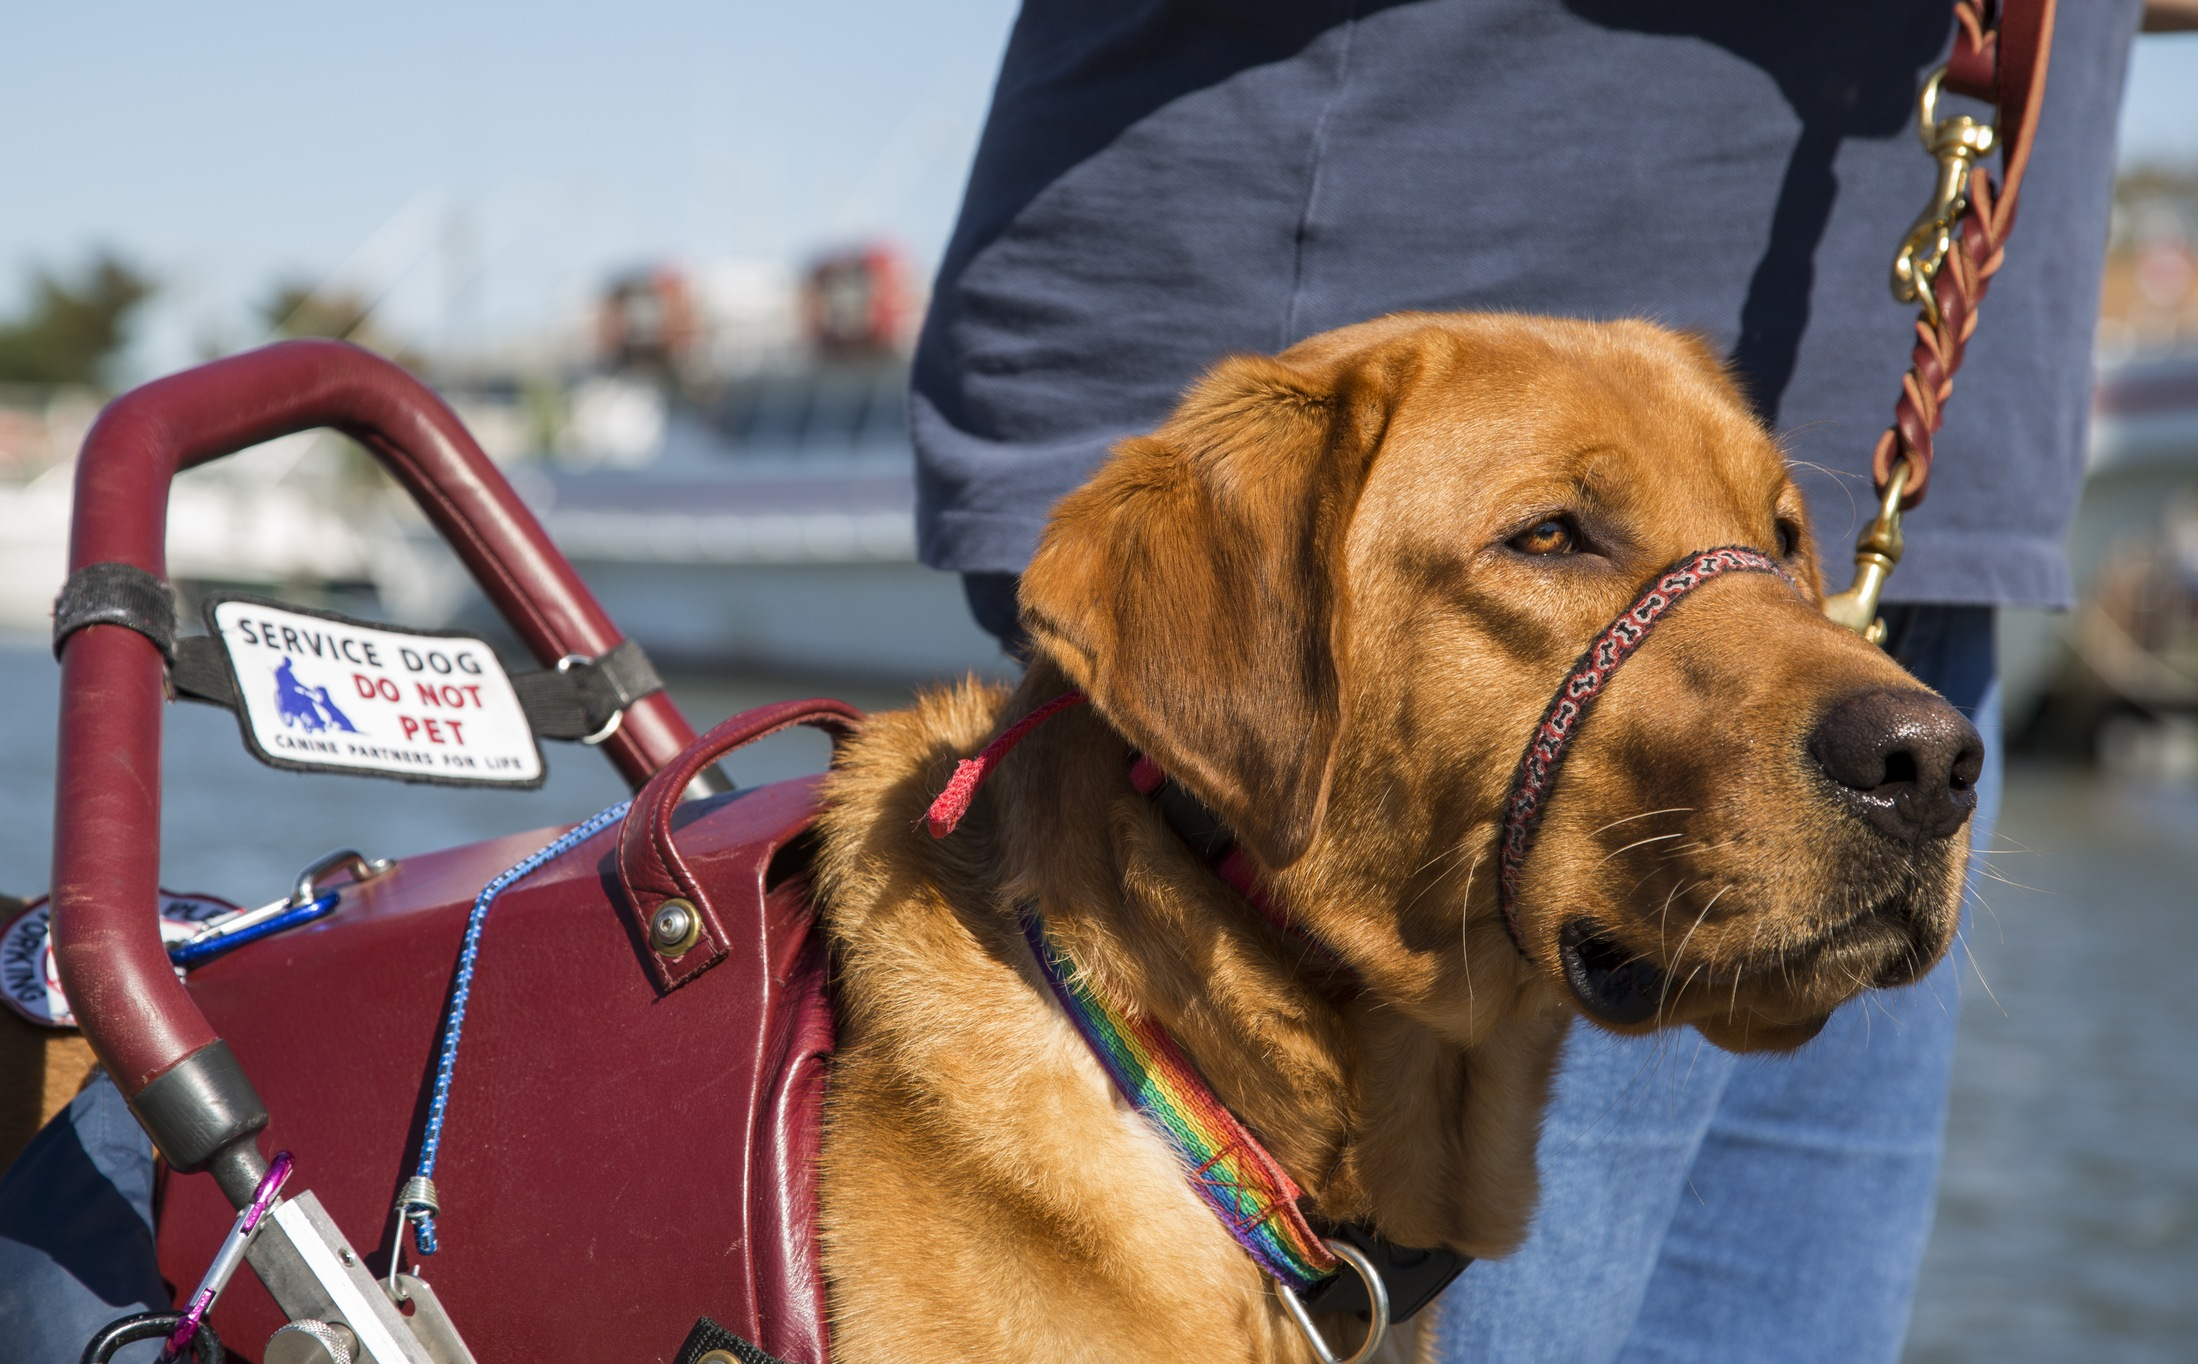 Please Stop Using Your Pet As A Fake Service Dog